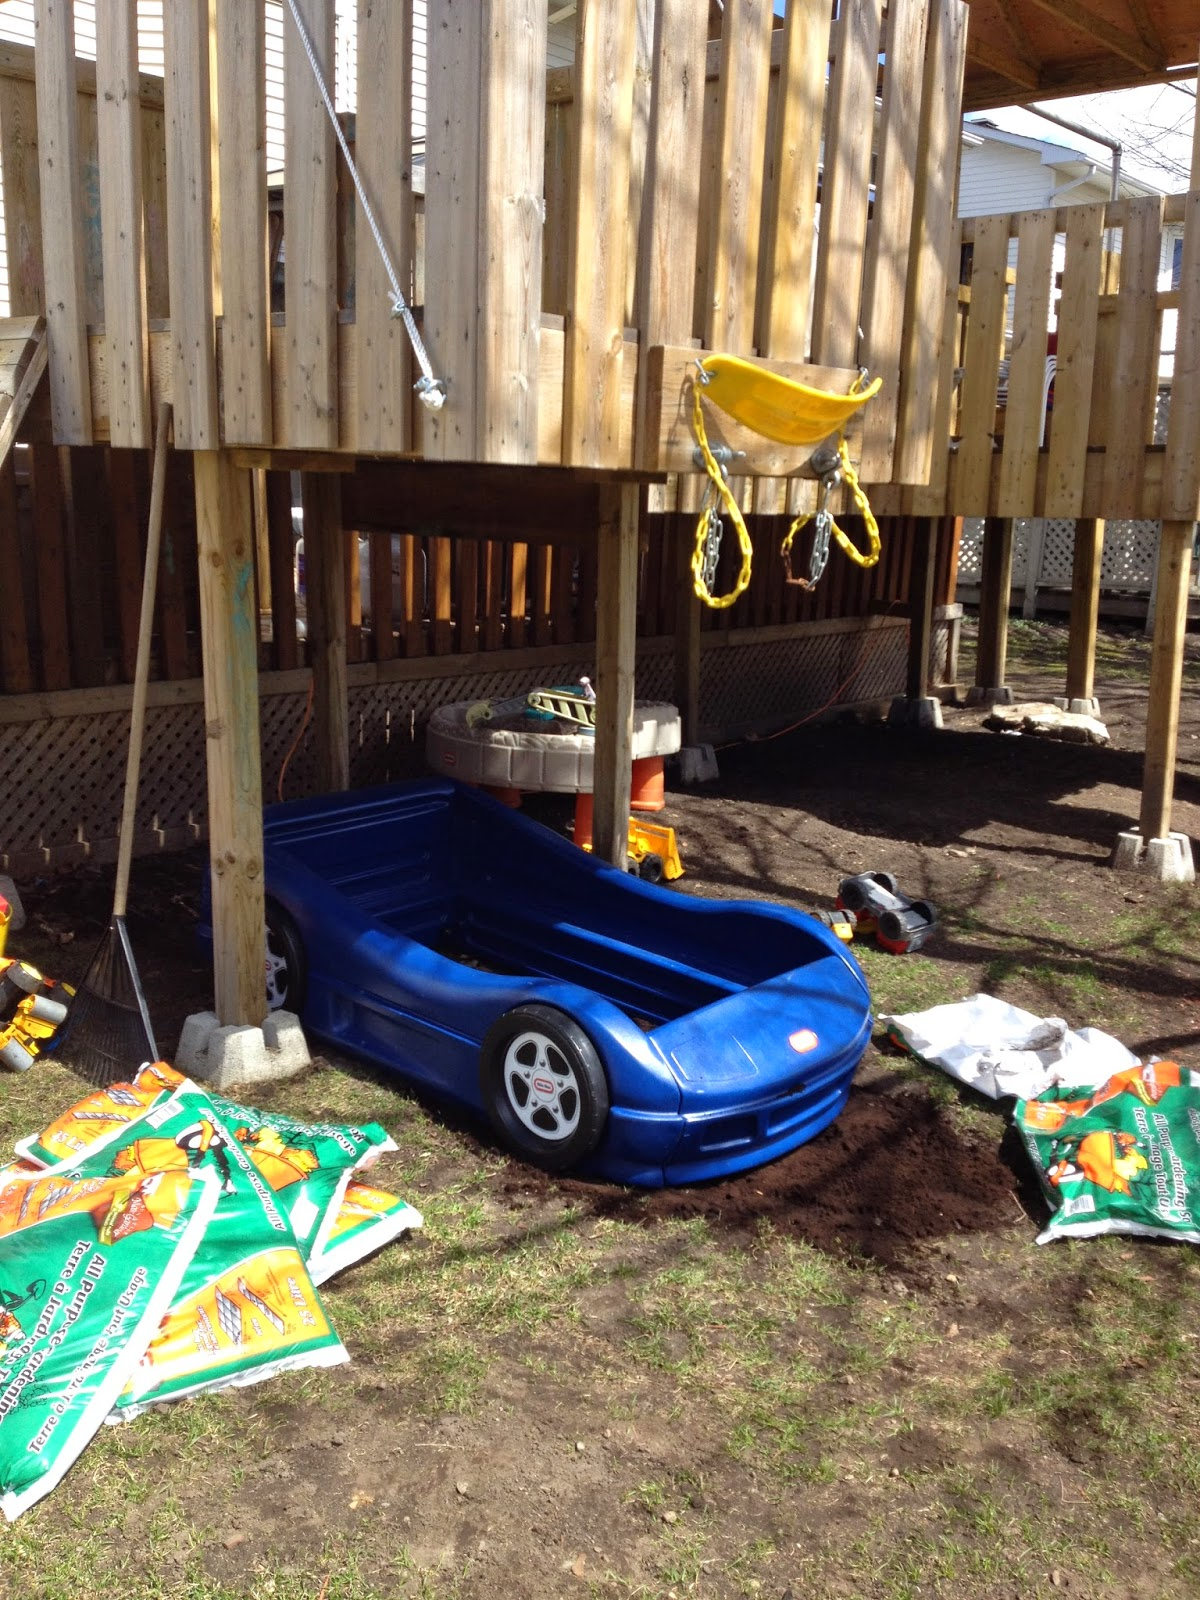 little tikes, car bed, outside, dirt box, sand box, re-use